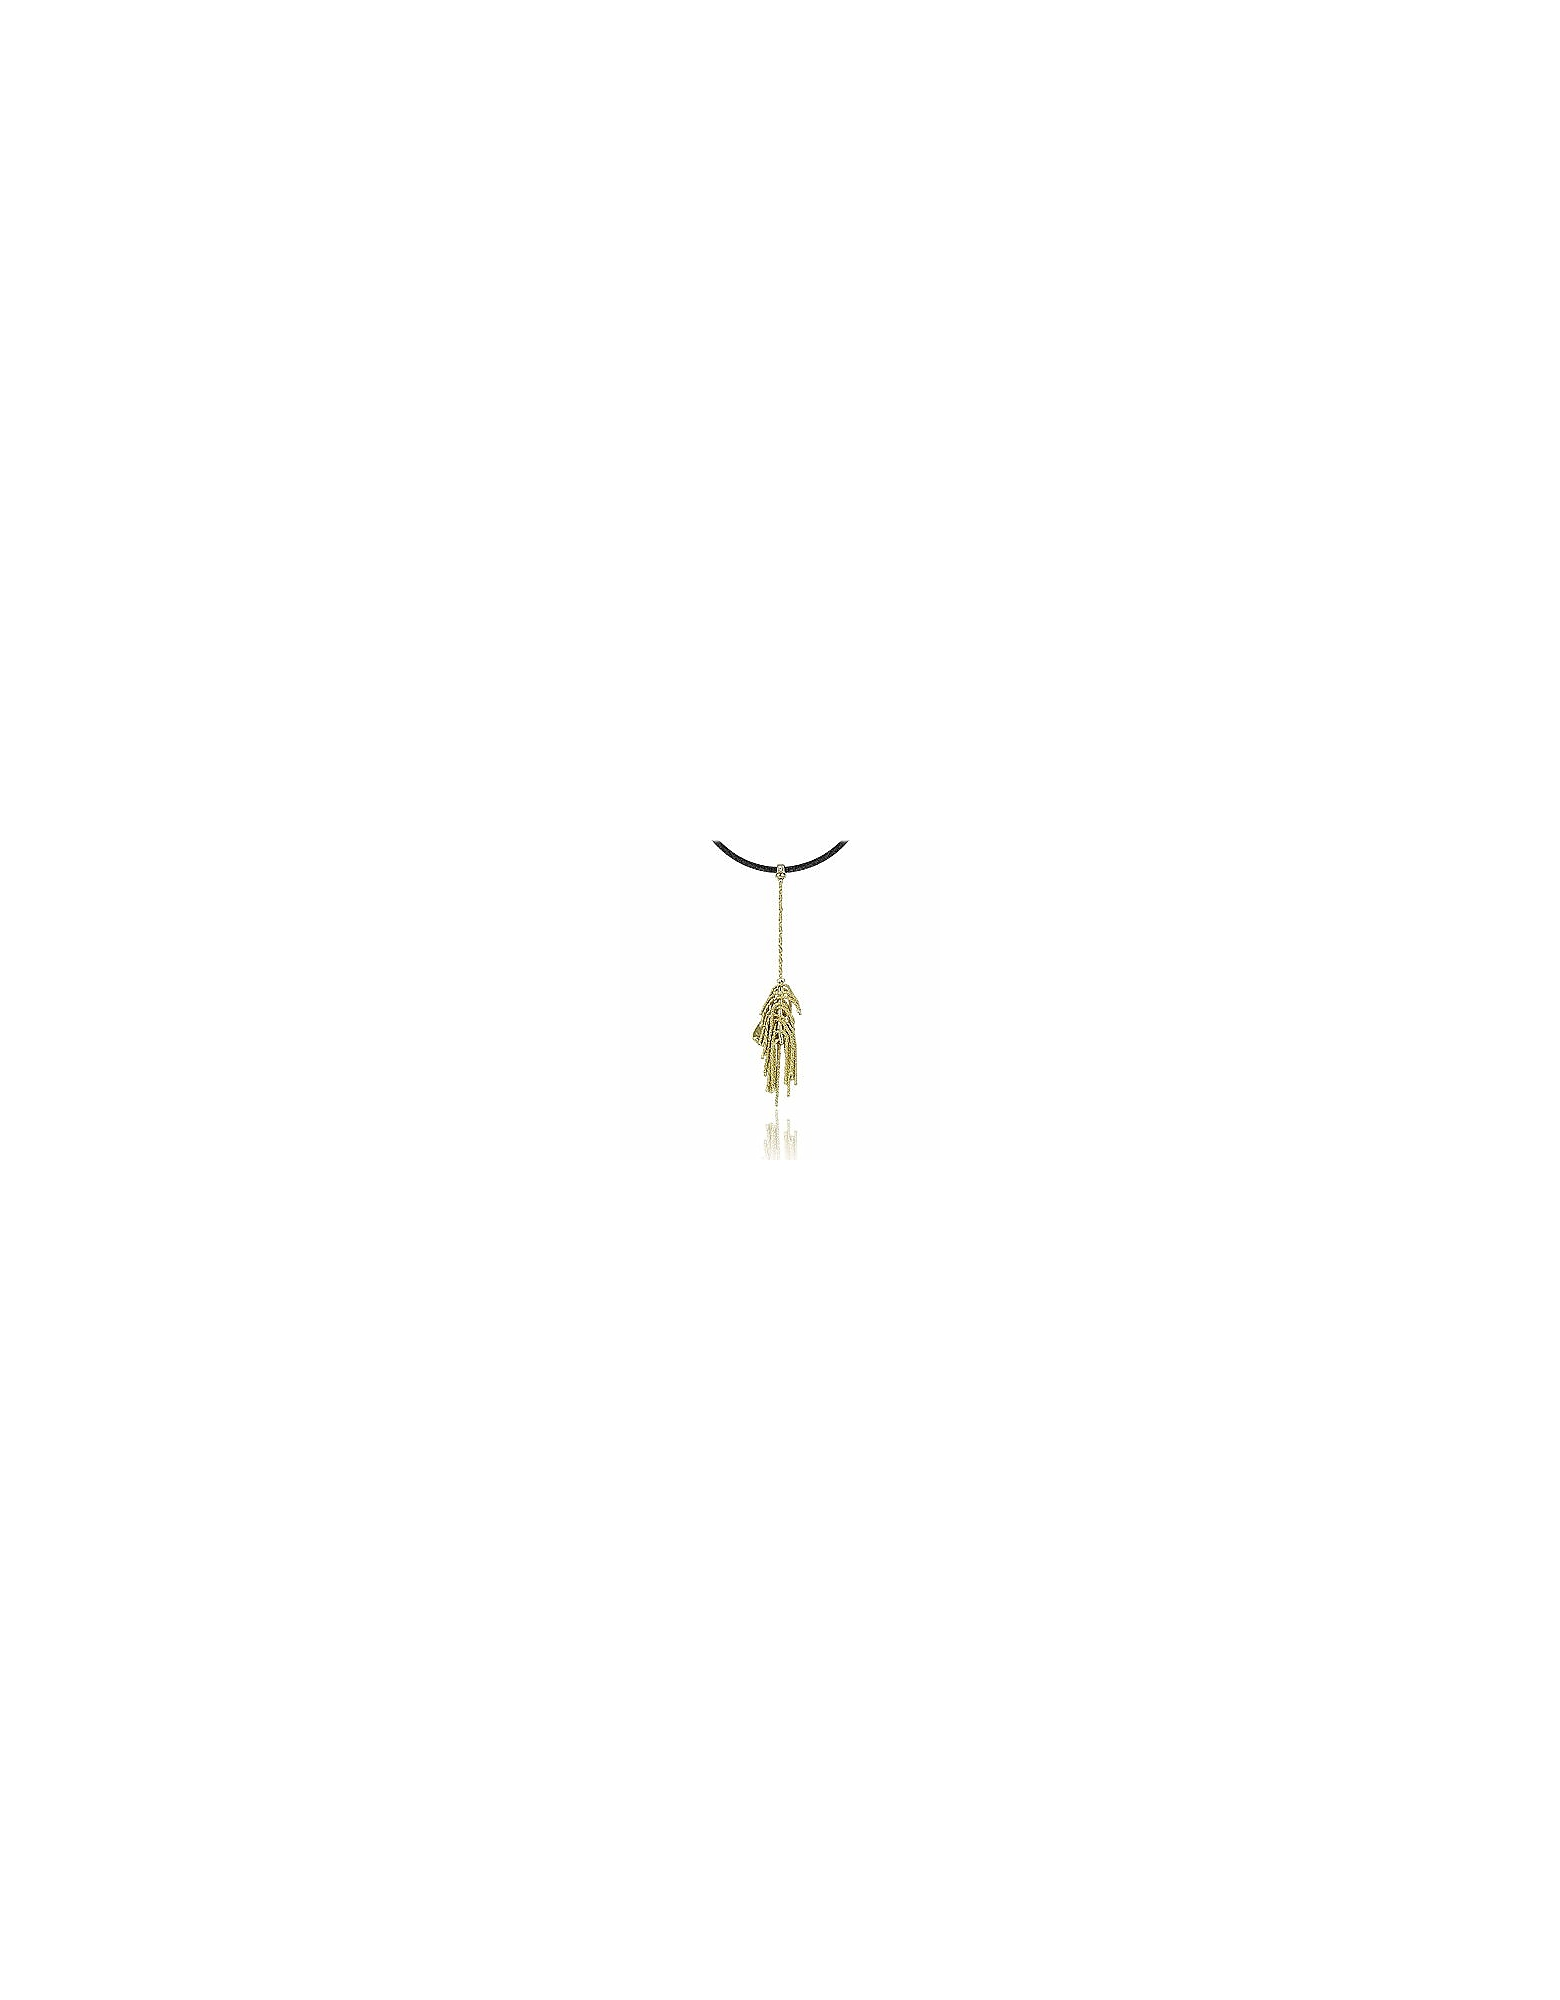 Orlando Orlandini Necklaces, Flirt - 18K Gold Drop Pendant w/Diamond